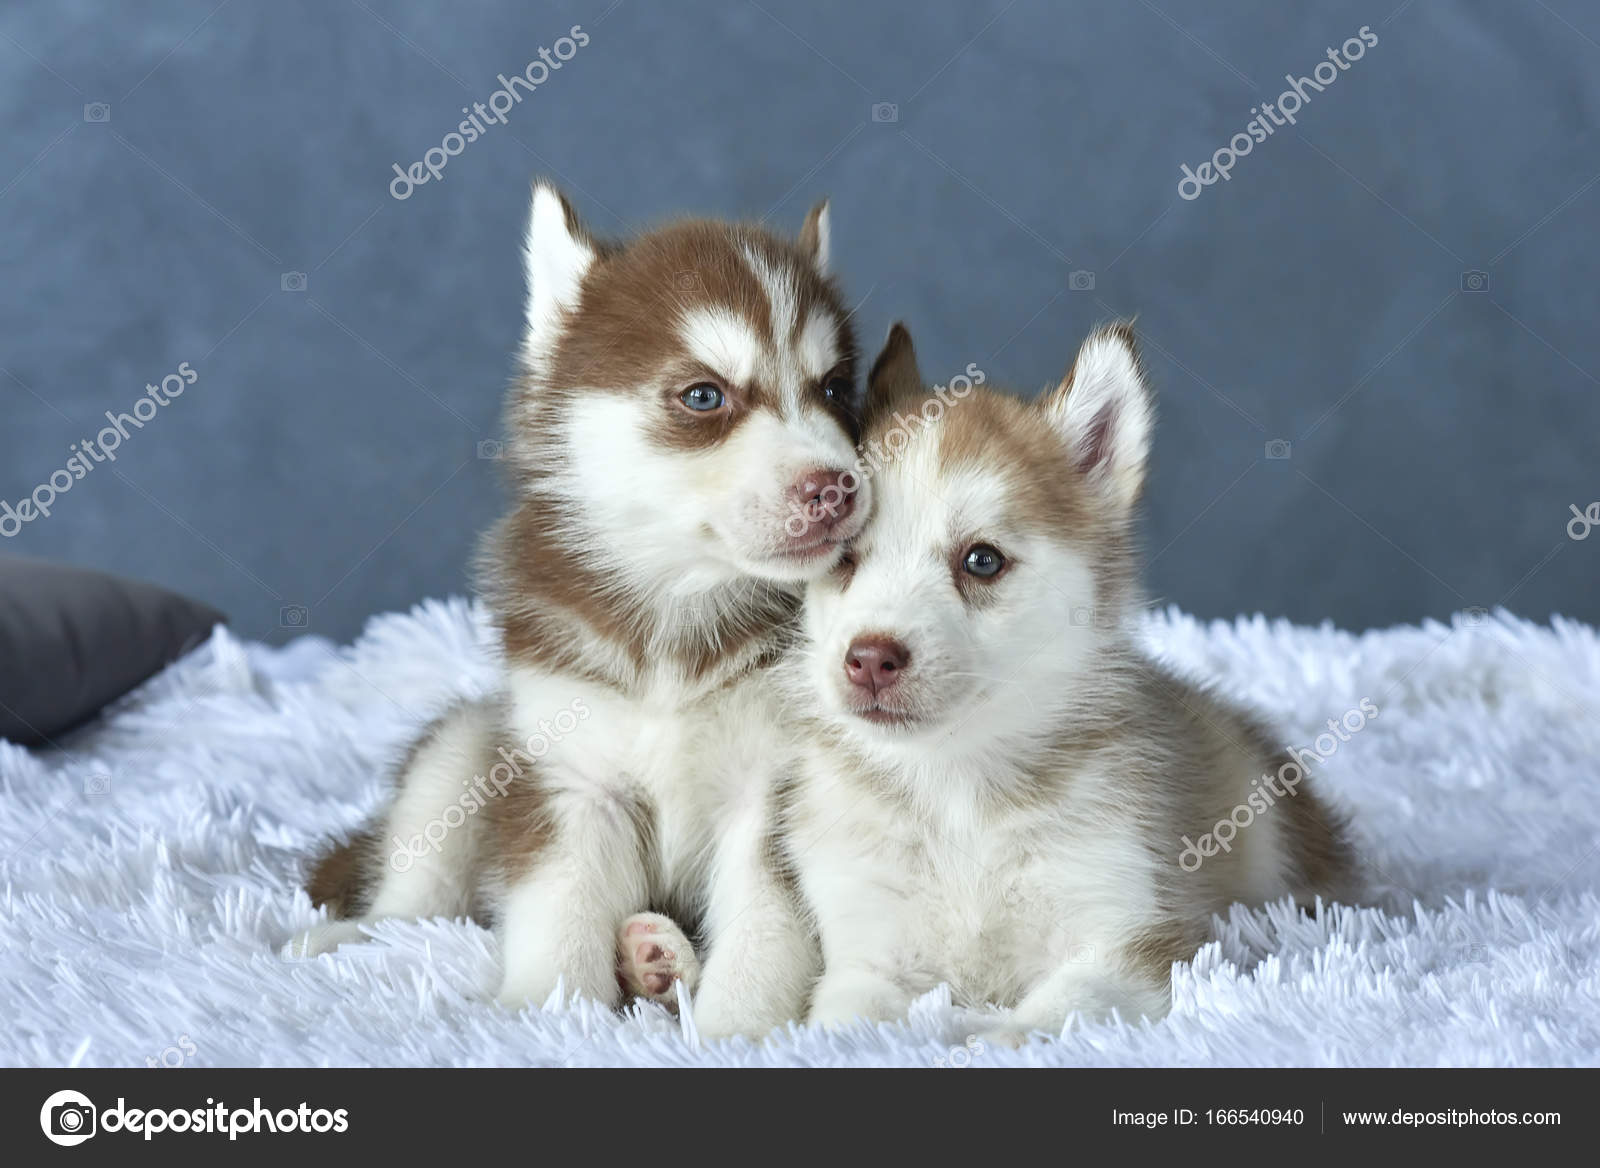 Two Blue Eyed Copper And Light Red Husky Puppies Lying On White Blanket Stock Photo C Anniezhak 166540940